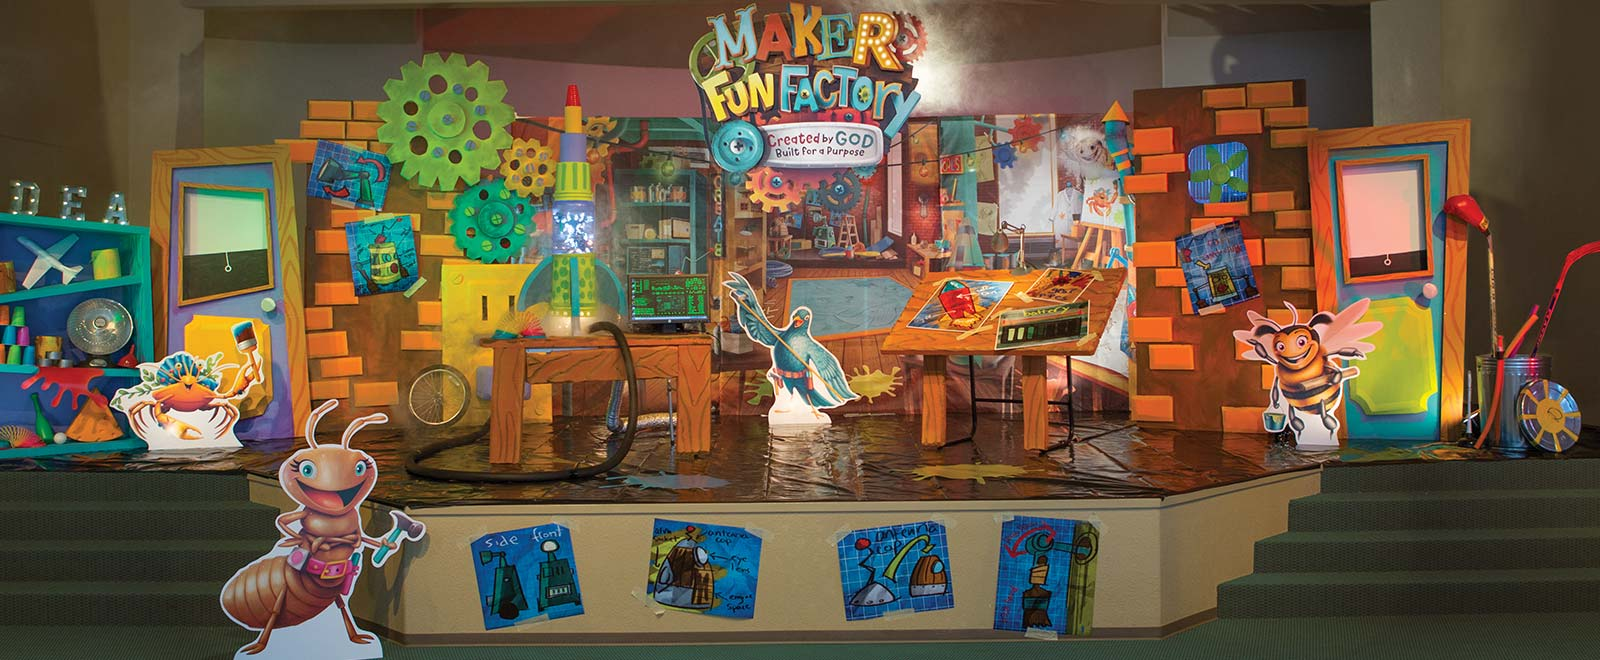 maker-fun-factory-vbs-main-set